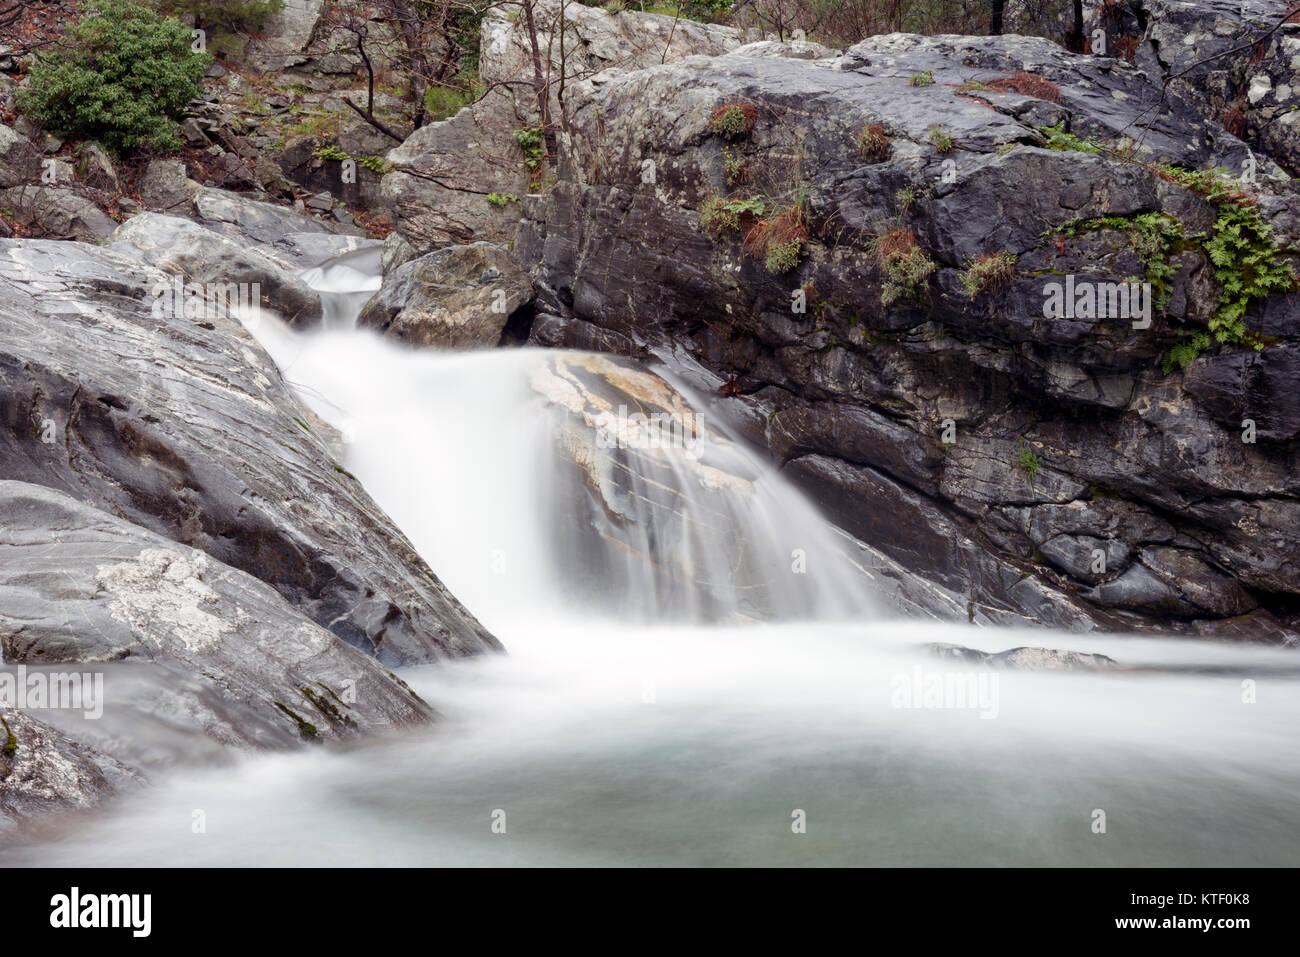 The Hasanboguldu river and waterfalls in Edremit district of Balikesir province of Turkey. - Stock Image